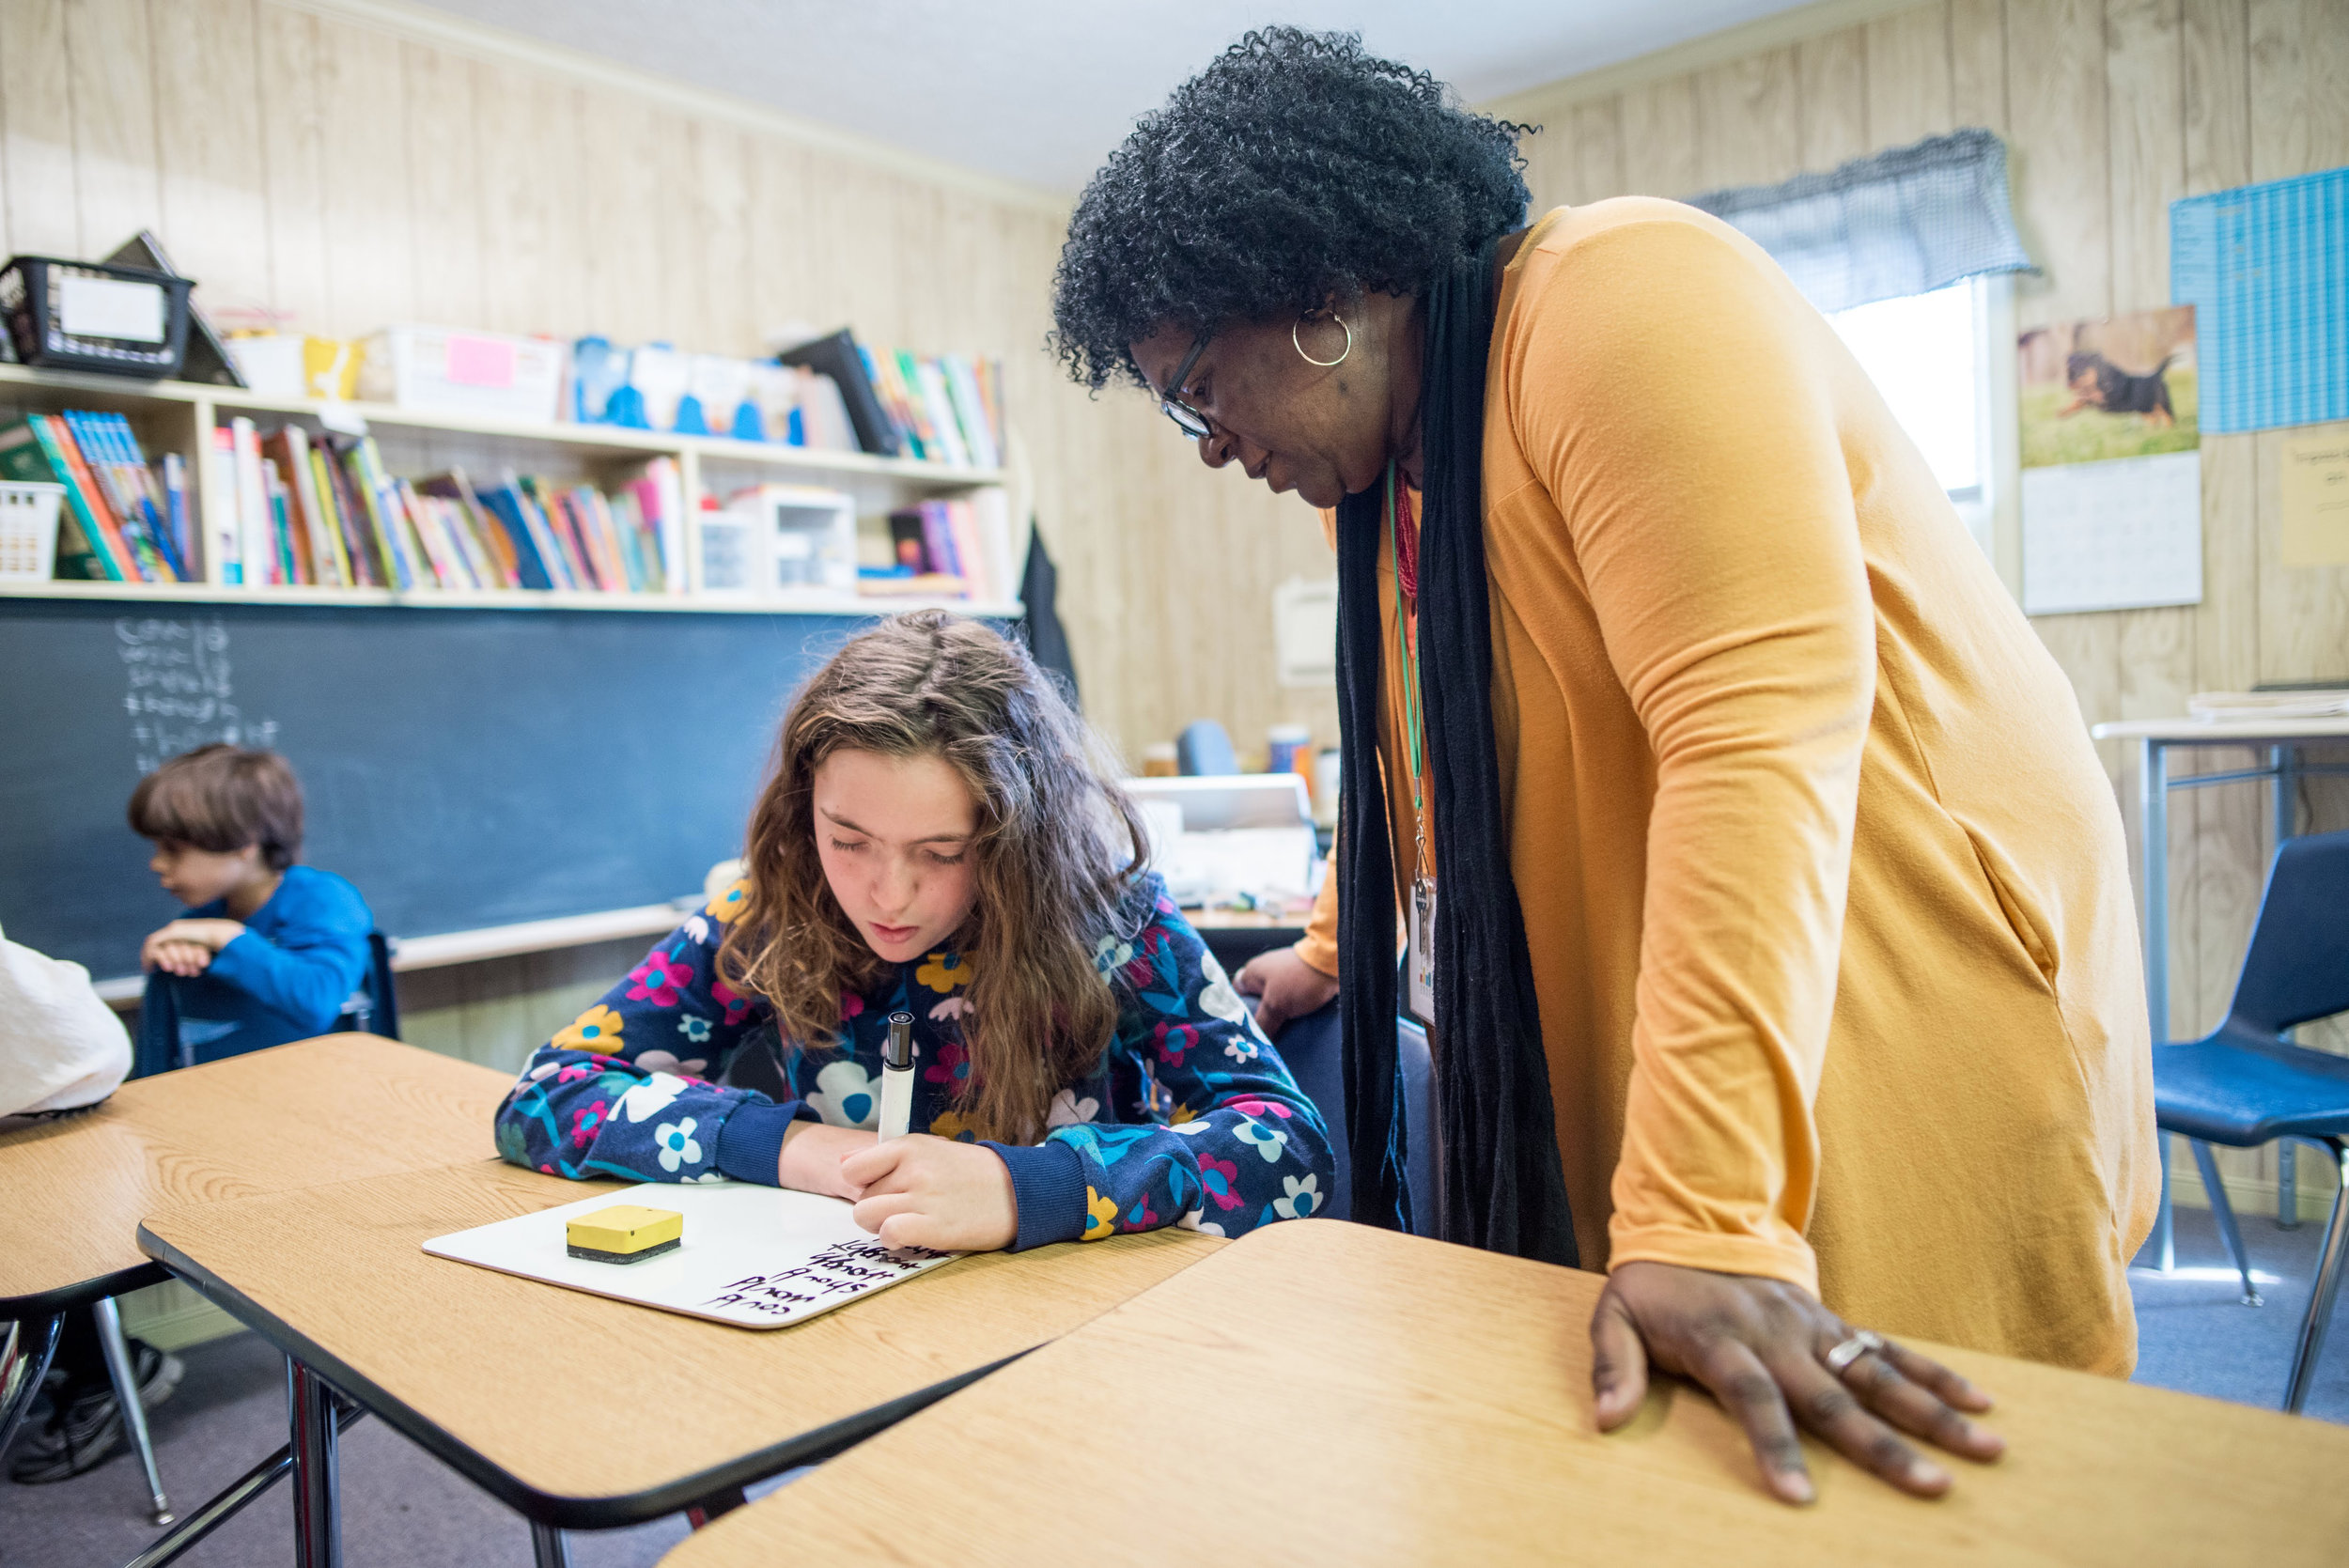 A teacher provides specialized 1:1 instruction to her student.